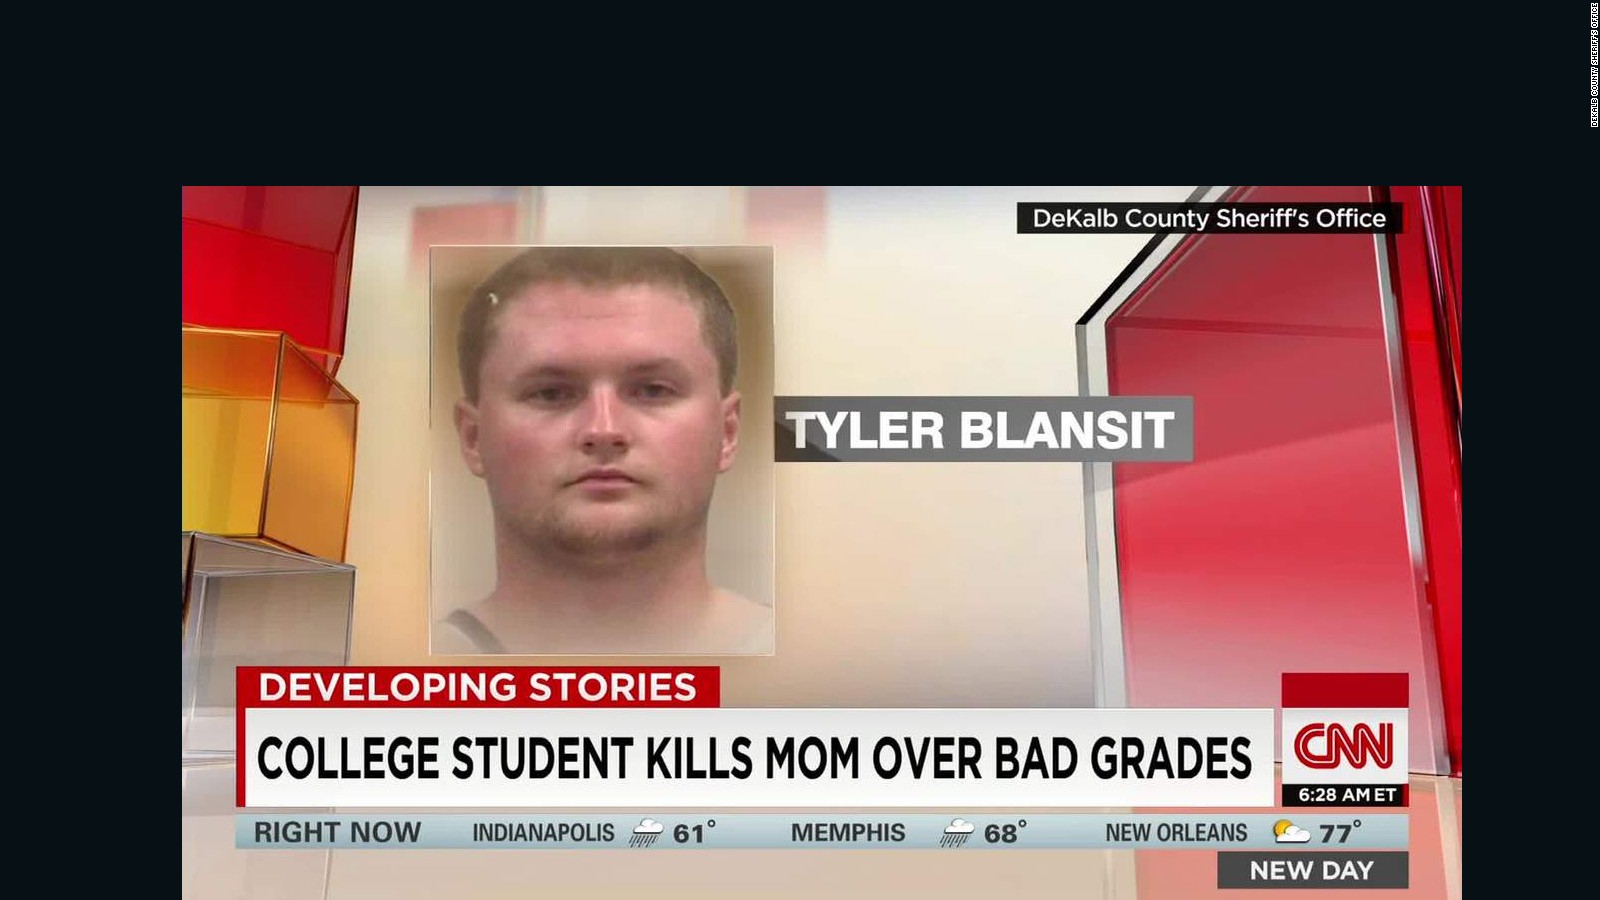 Student killed mom in argument over grades, police say - CNN